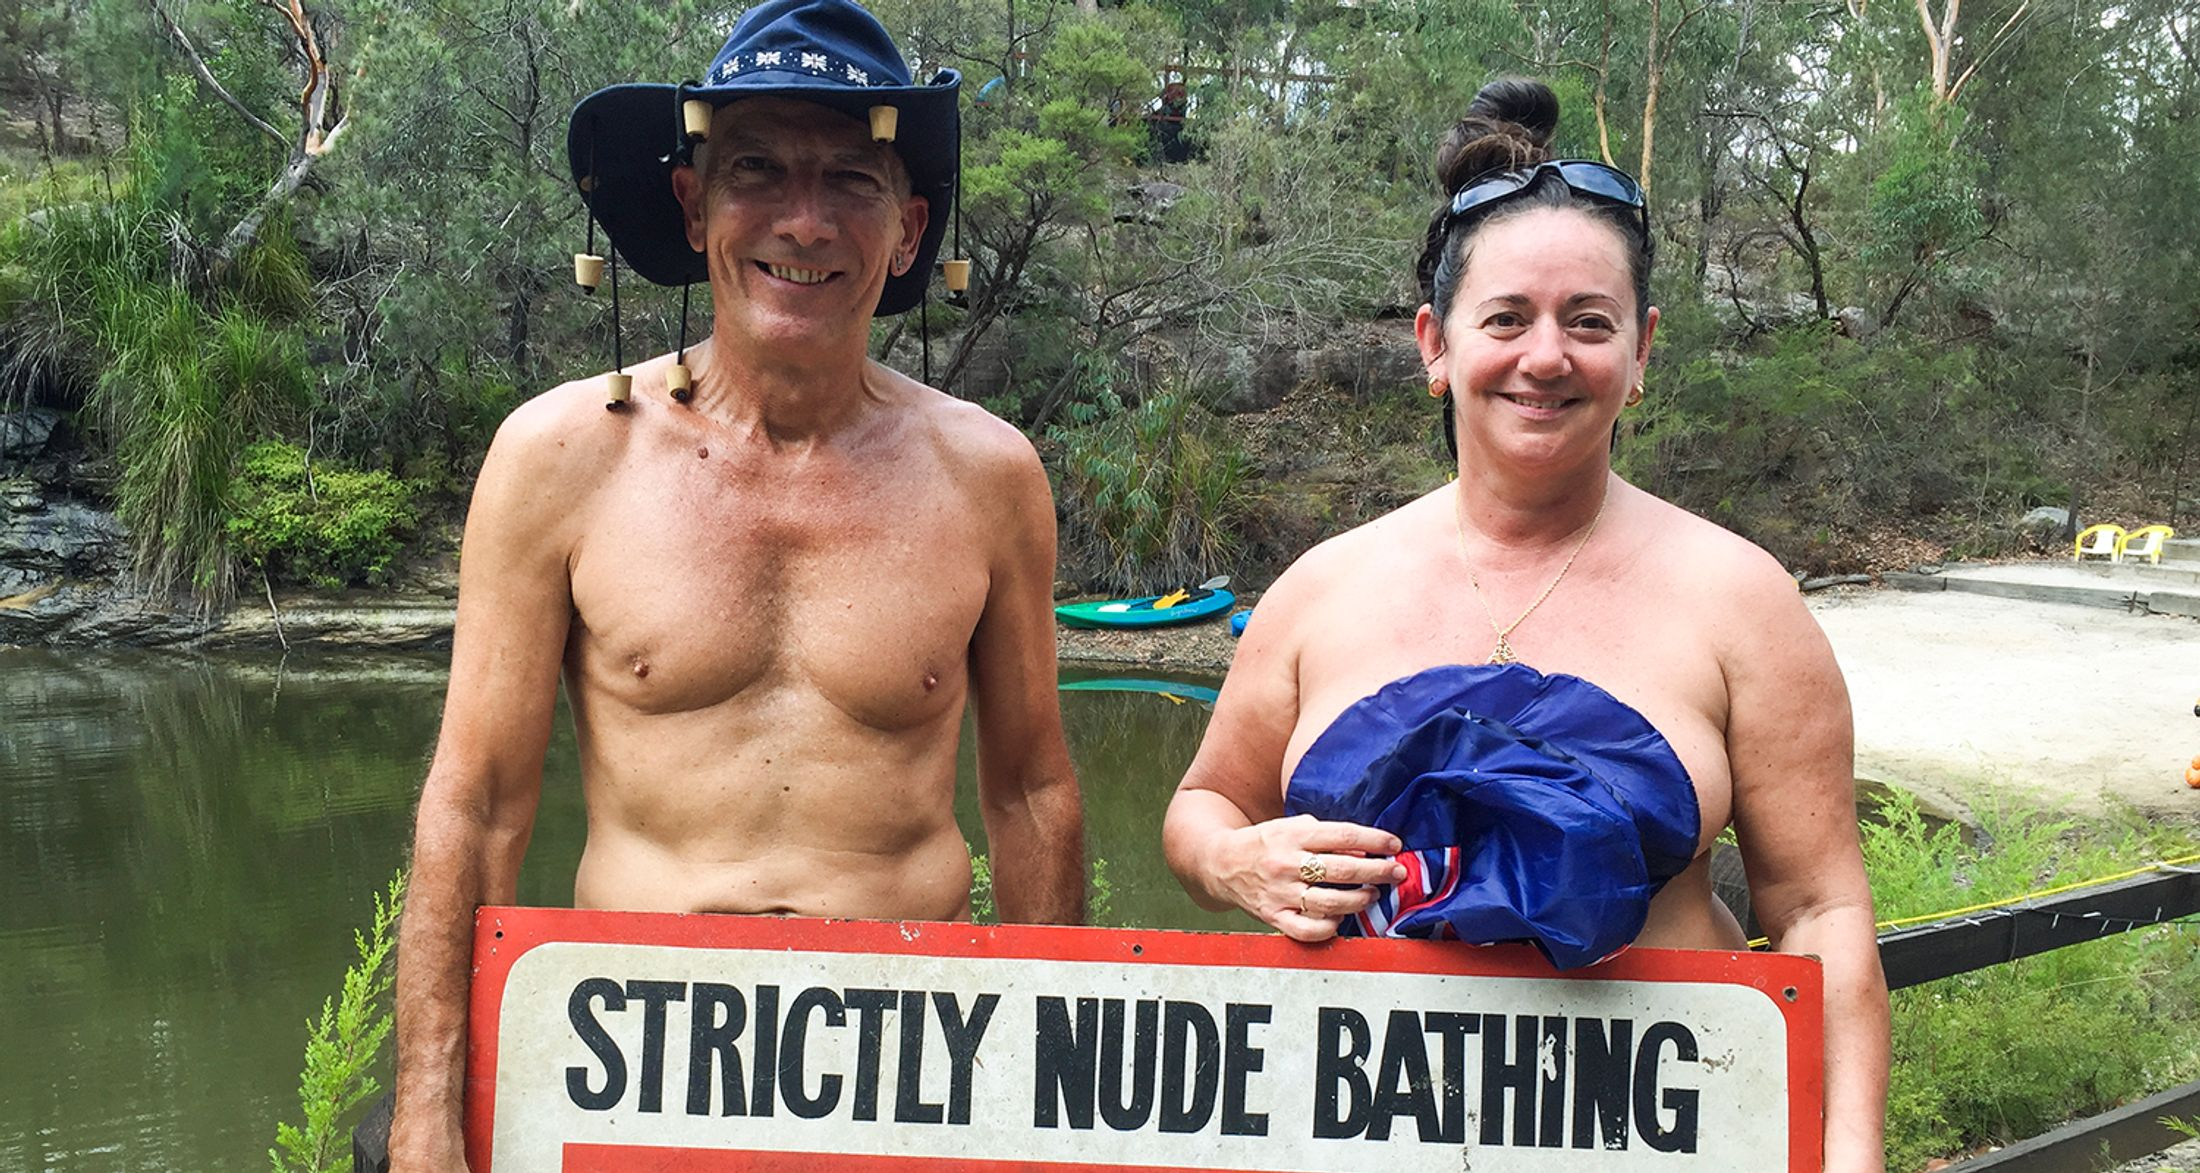 granny beach nudist Get naked or get lost: A day at Gunnison, Jersey's only ...